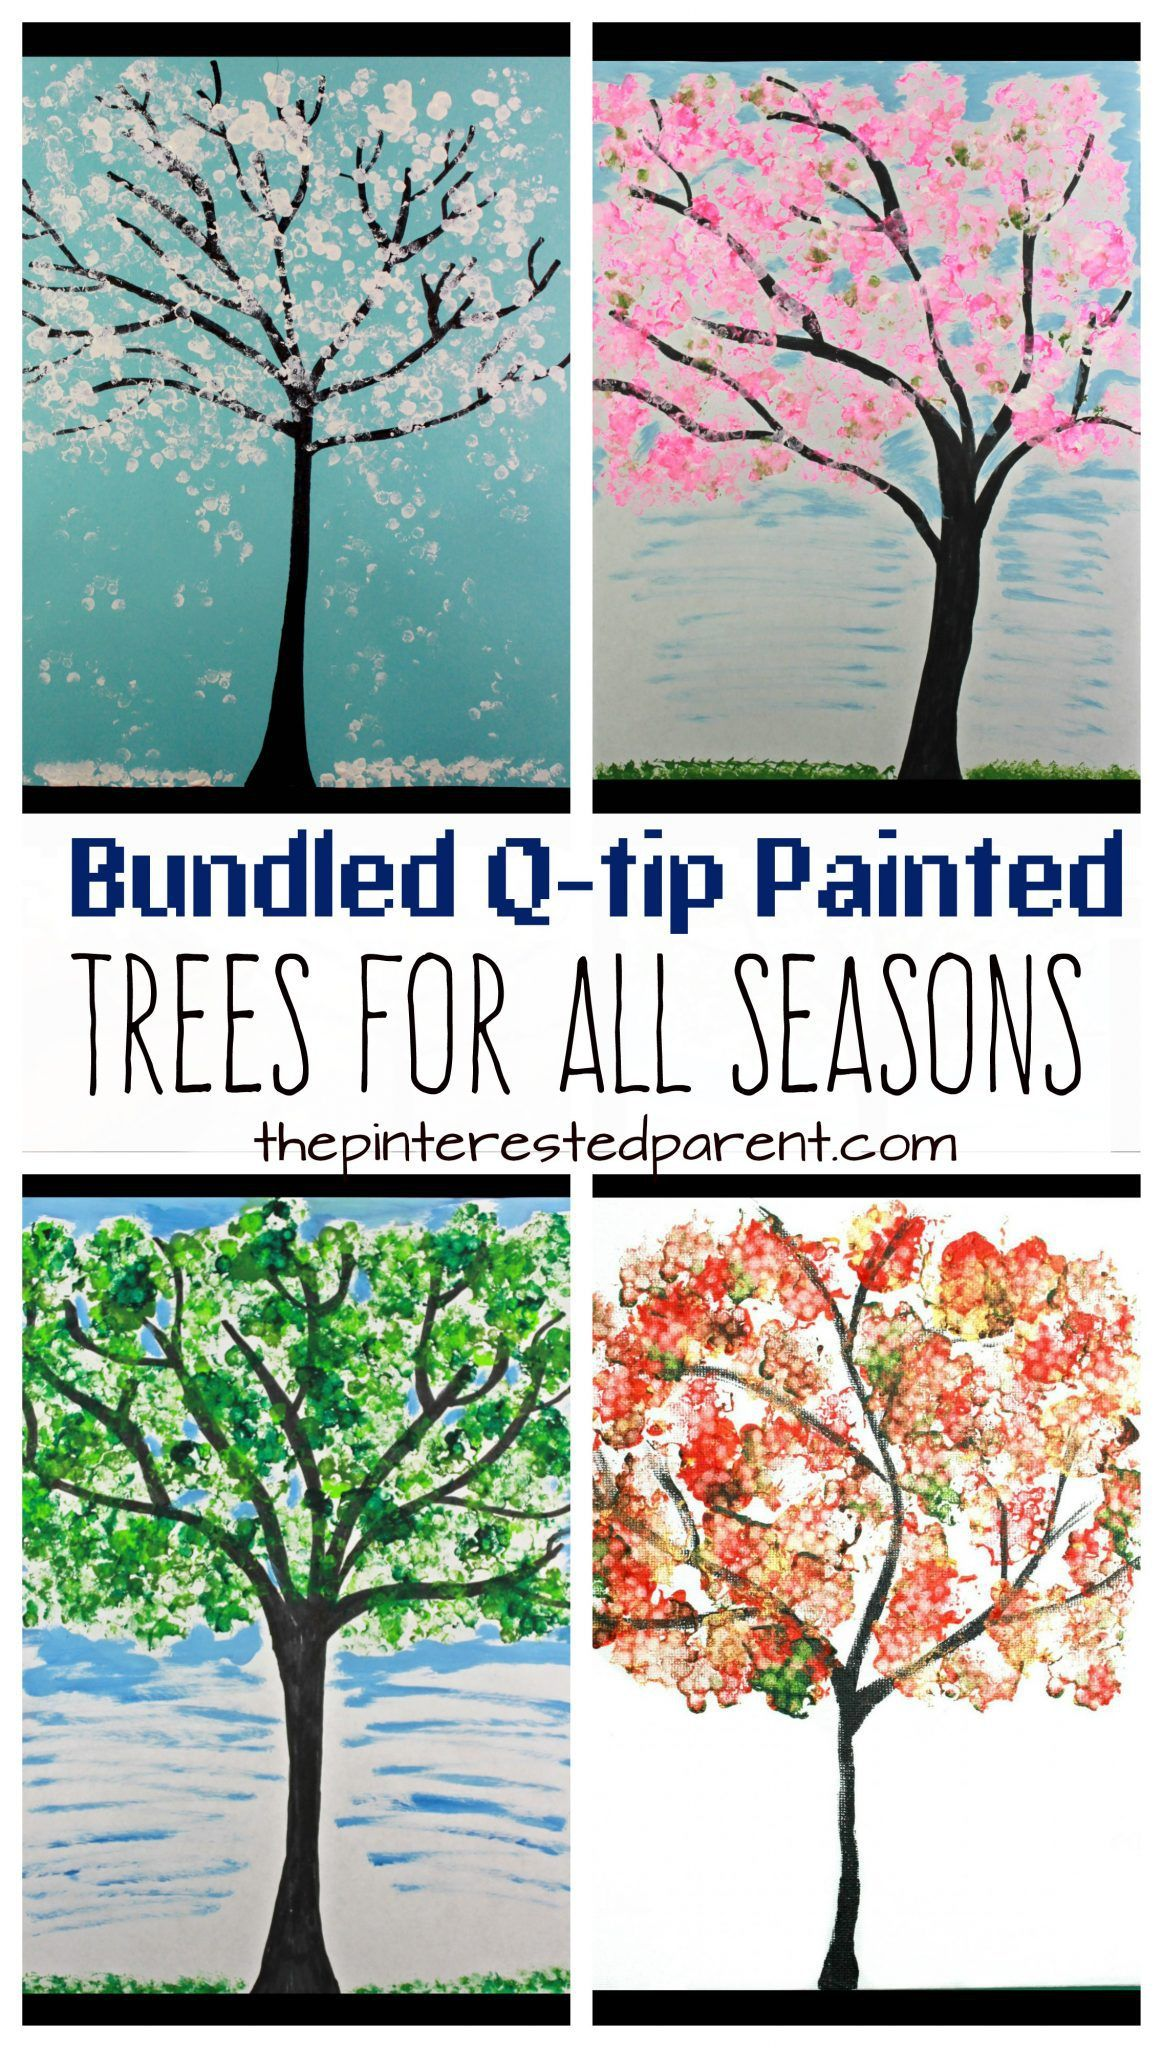 Bundled Q Tip Trees For Every Season